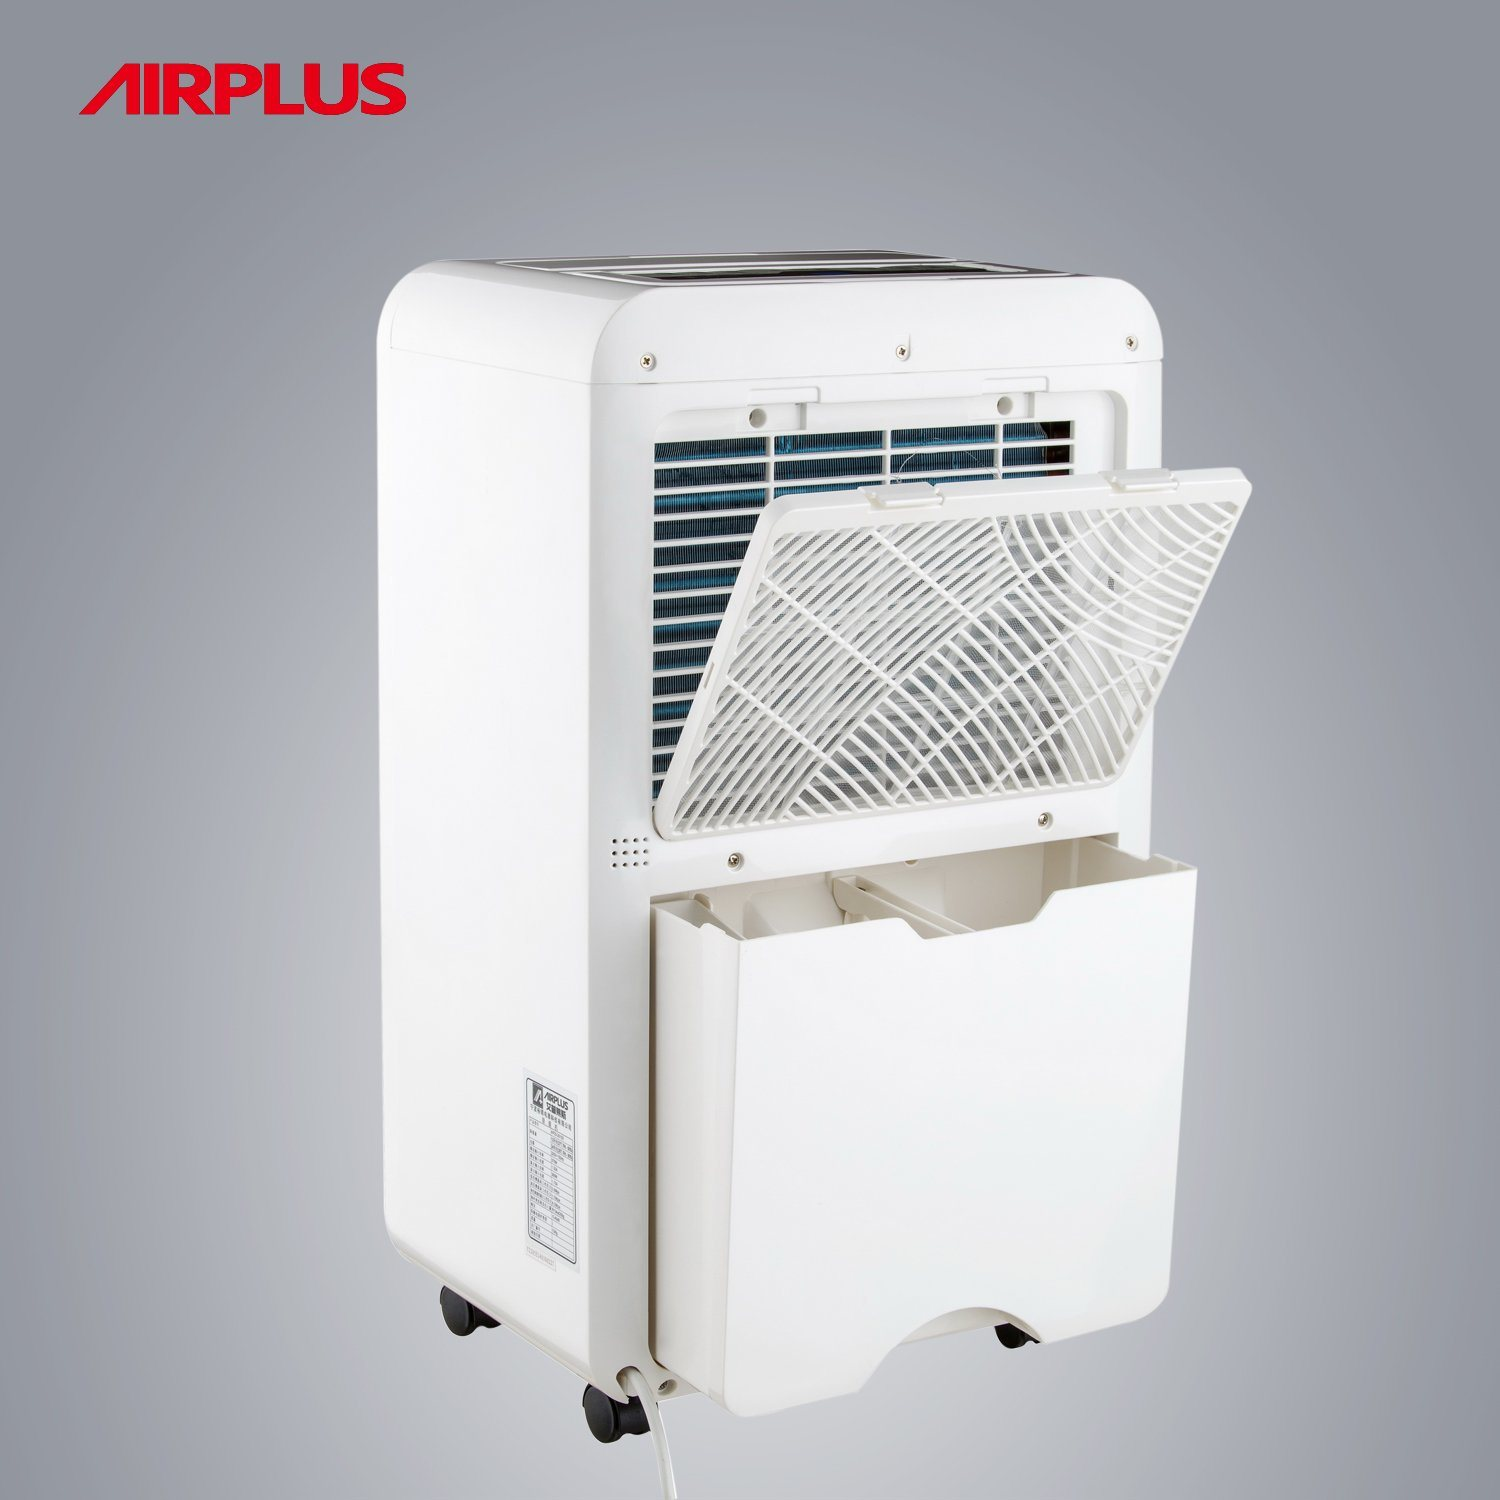 25L/Day Electronic Indoor Dehumidifier with Ionizer (AP25-202EE)